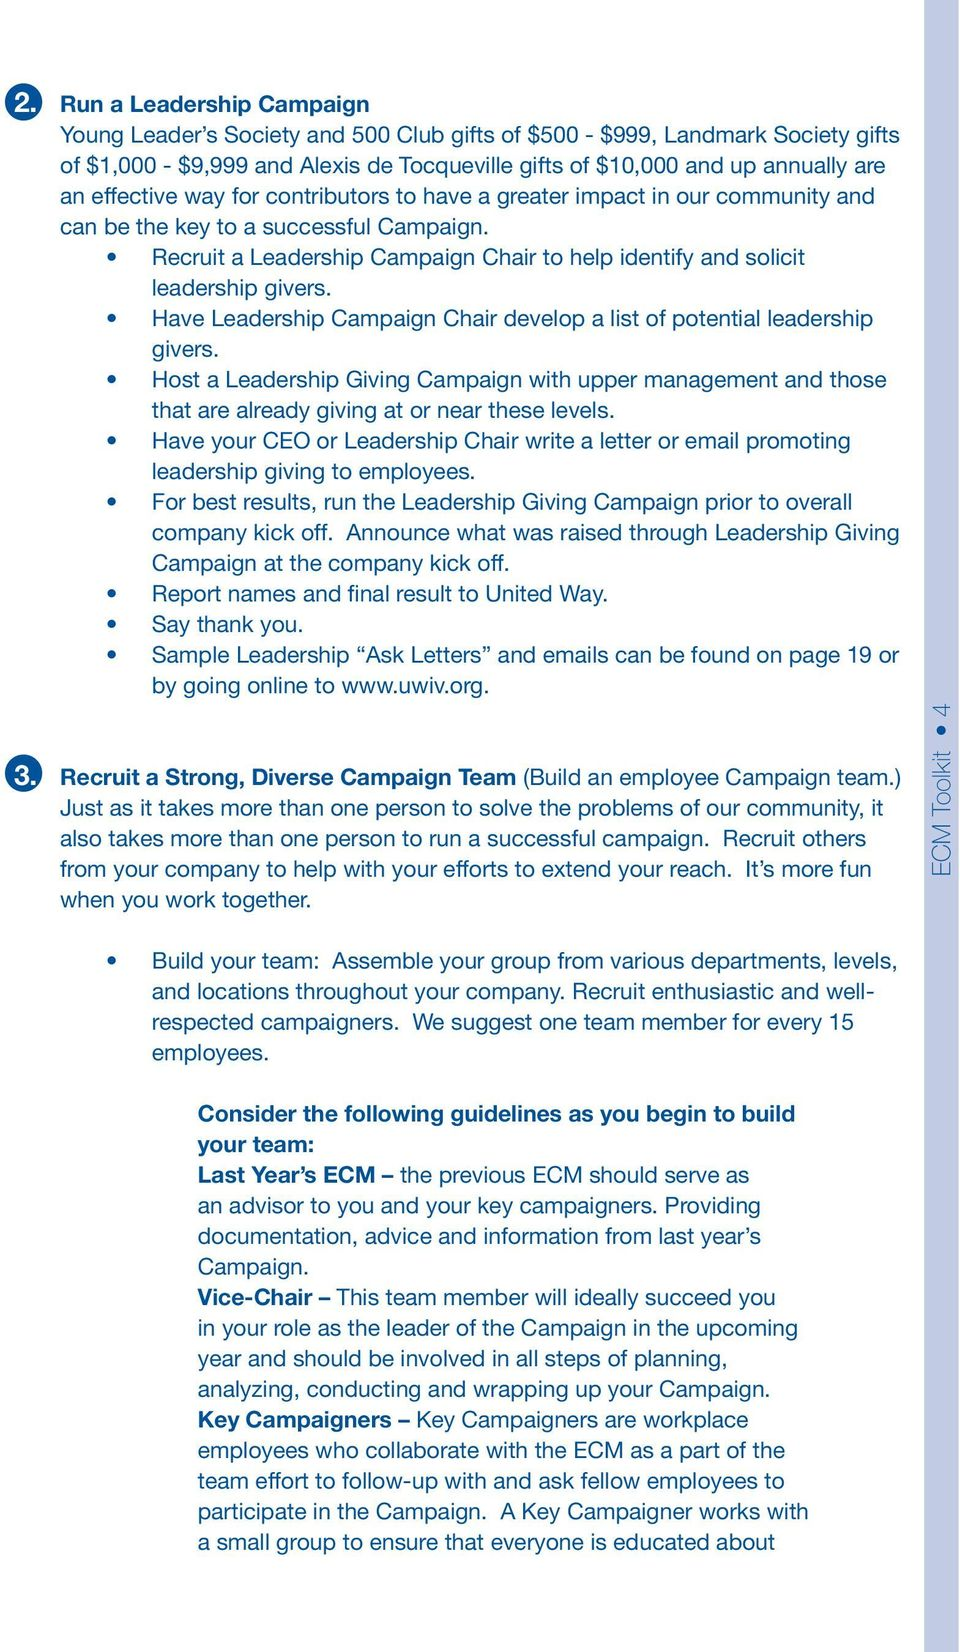 Have Leadership Campaign Chair develop a list of potential leadership givers. Host a Leadership Giving Campaign with upper management and those that are already giving at or near these levels.